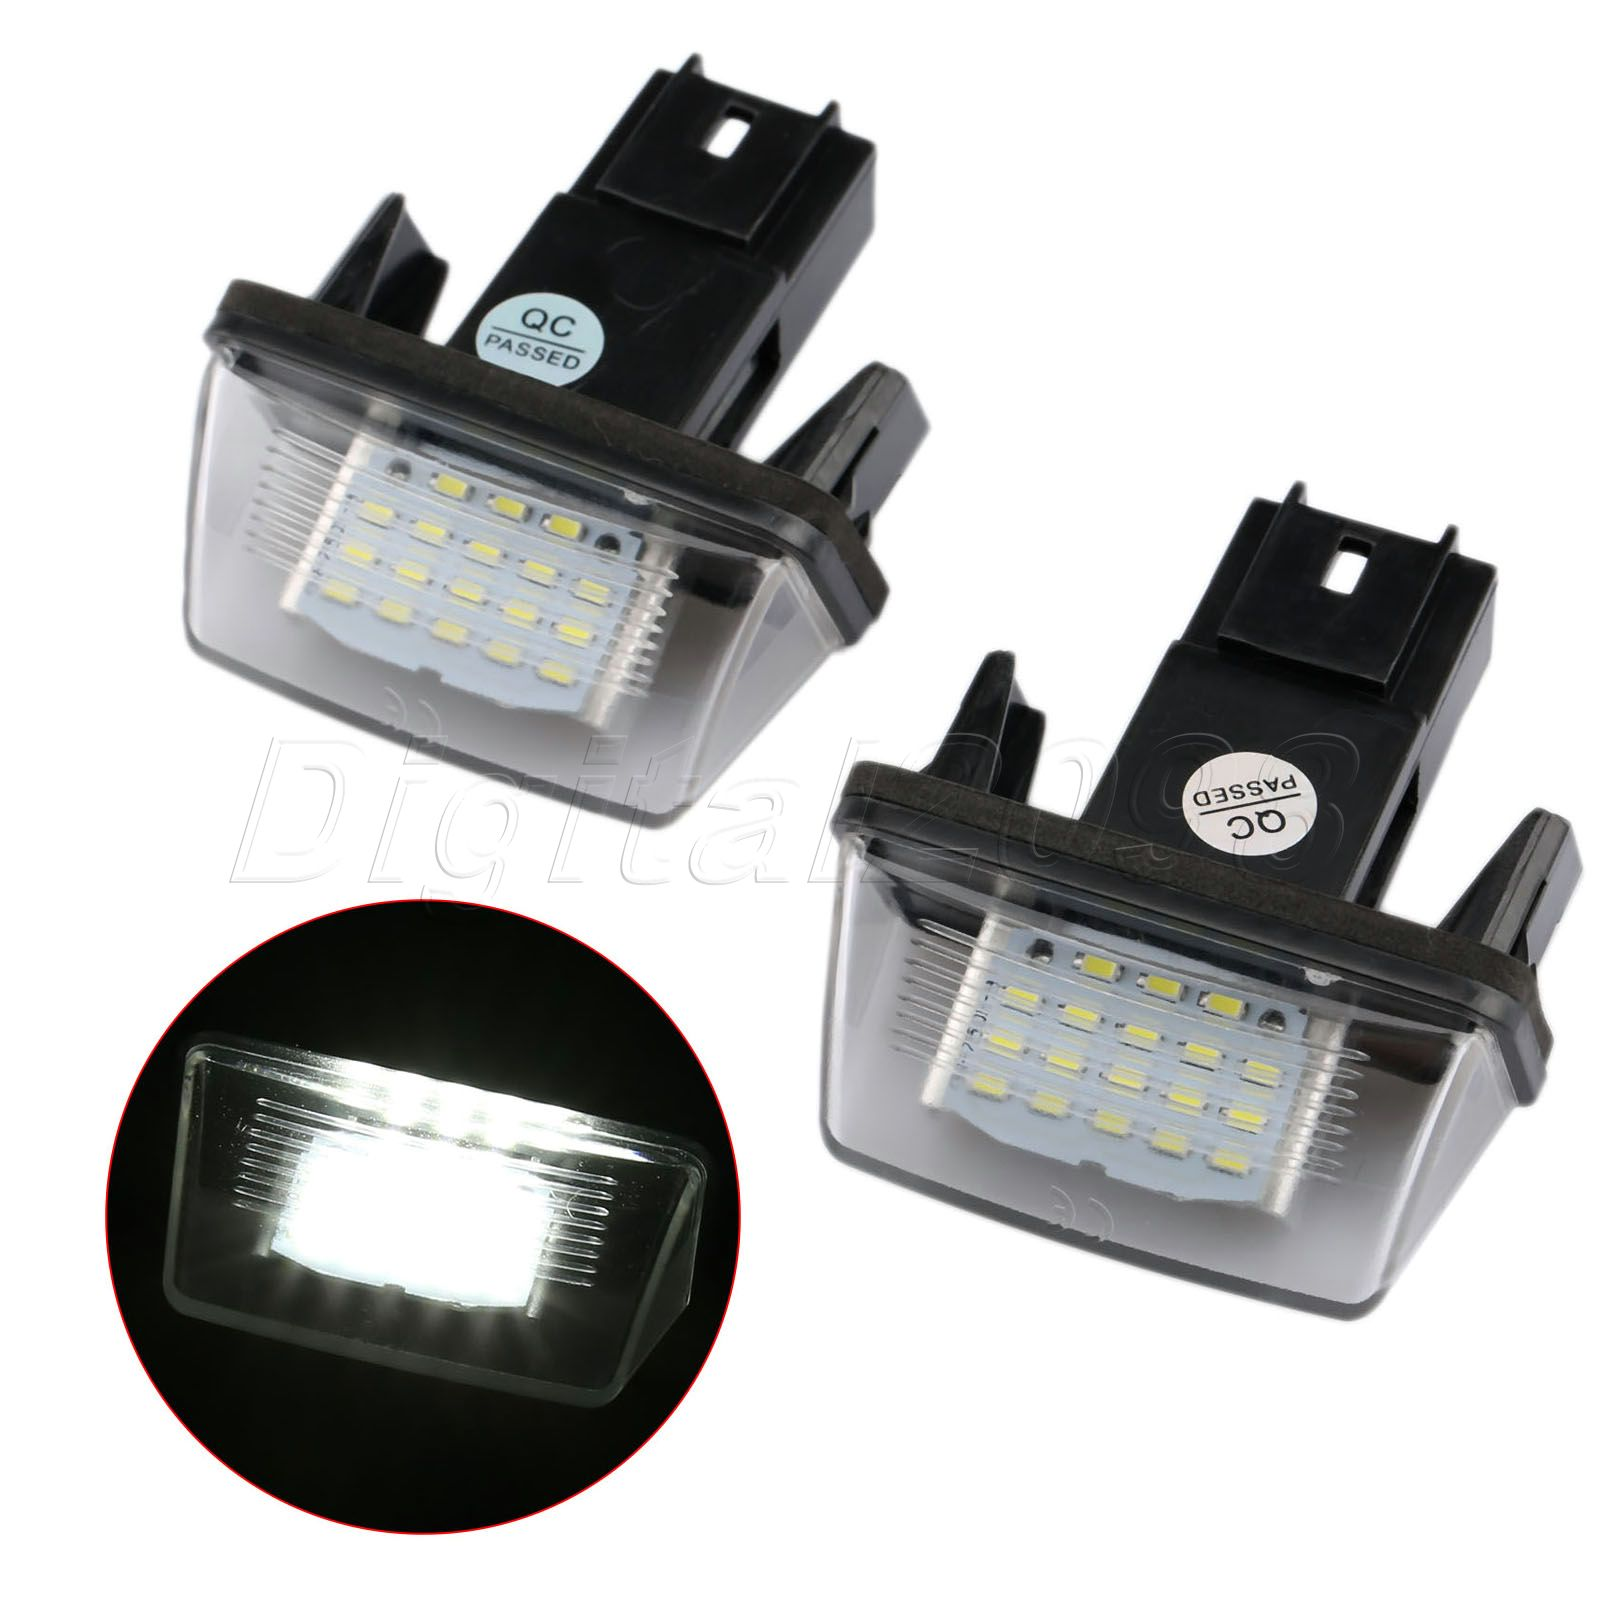 Yetaha 2x LED Car License Number Plate Light Bulb Lamp 18LED 12V Lamp For Peugeot 206 207 306 307 406 Citroen C3 C5 Xsara Saxo led glove box light for peugeot 206 207 306 406 307 406 407 607 806 308 3008 auto led interior bulb 12v led glove box lamp